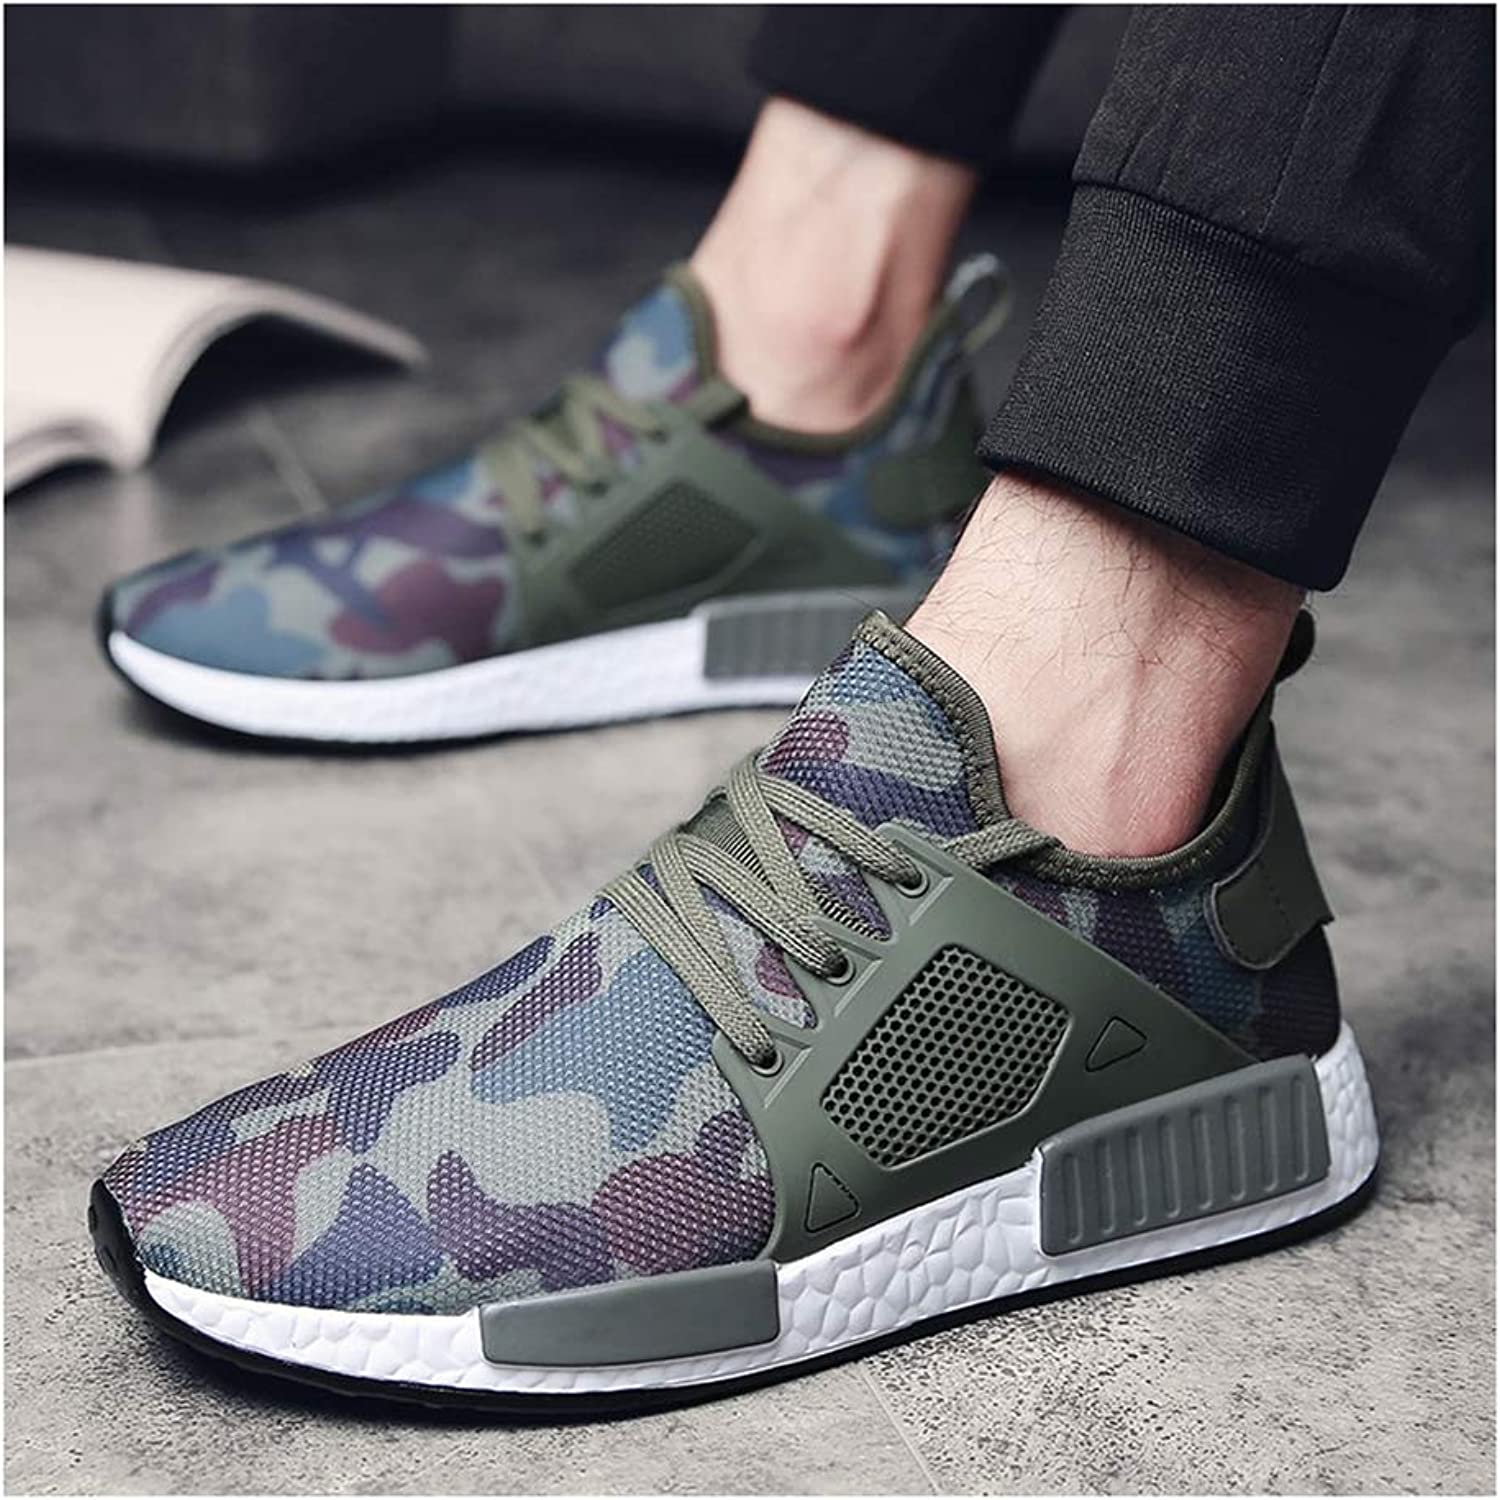 Four Seasons Men's shoes Breathable Sneakers, Fashion Casual Plate shoes Sports Running shoes,48